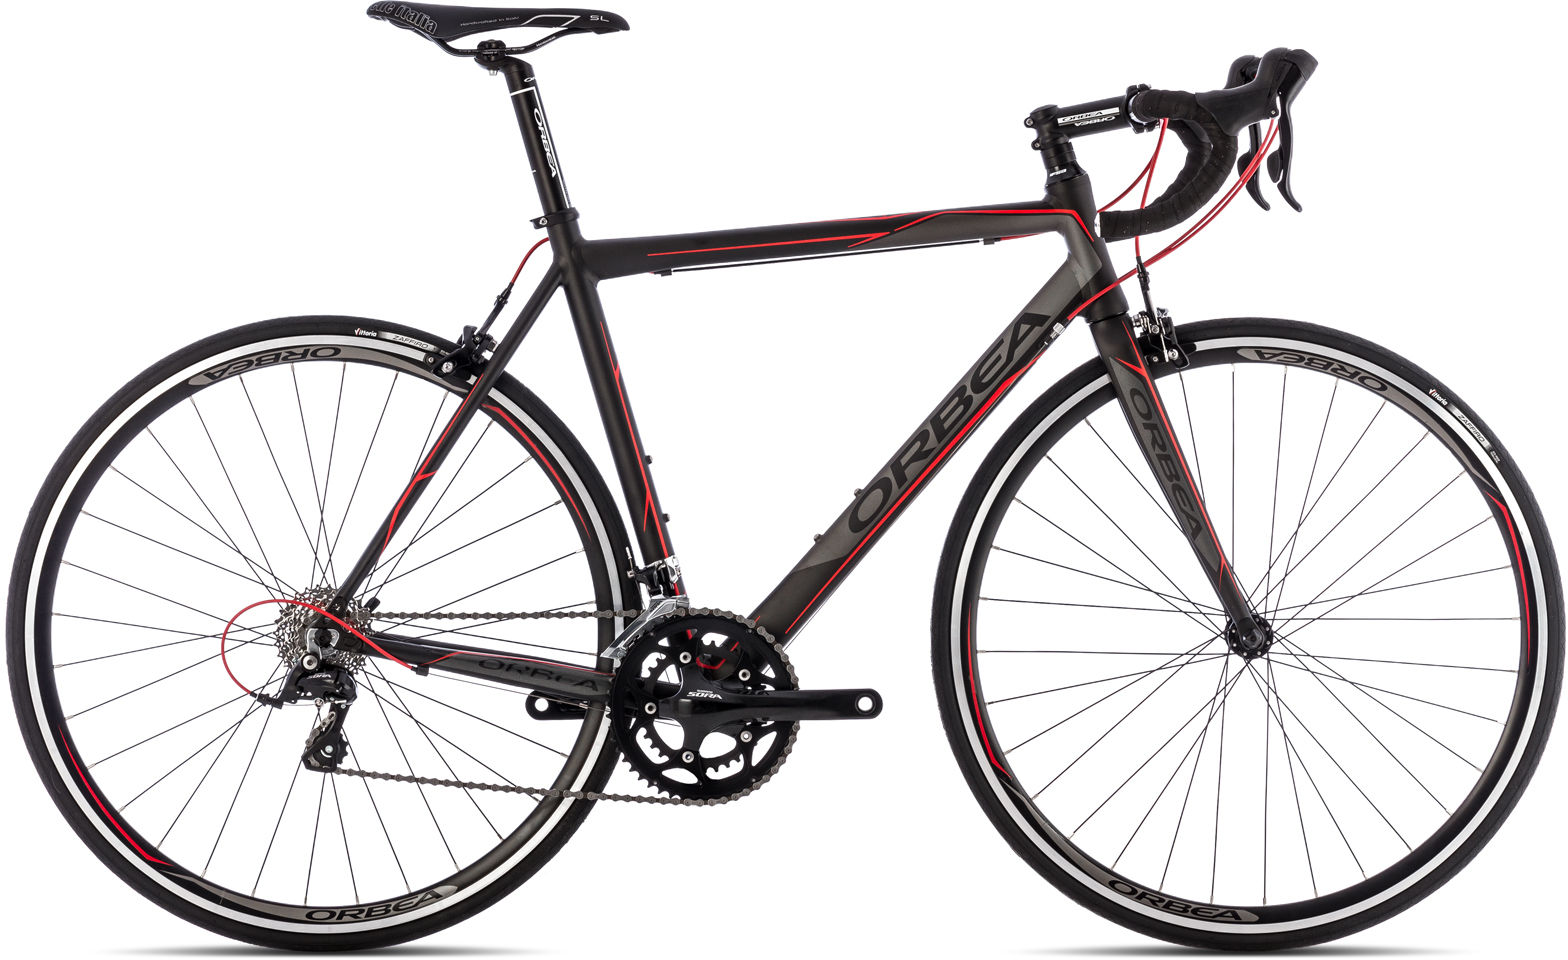 Watch gears likewise Cyclo Cross Alloy 2014 in addition 2012 11 01 archive moreover Cog config configuration configure gear icon in addition Temps Horloge Engrenages Dessin Gm513137899 47741556. on cogs and gears